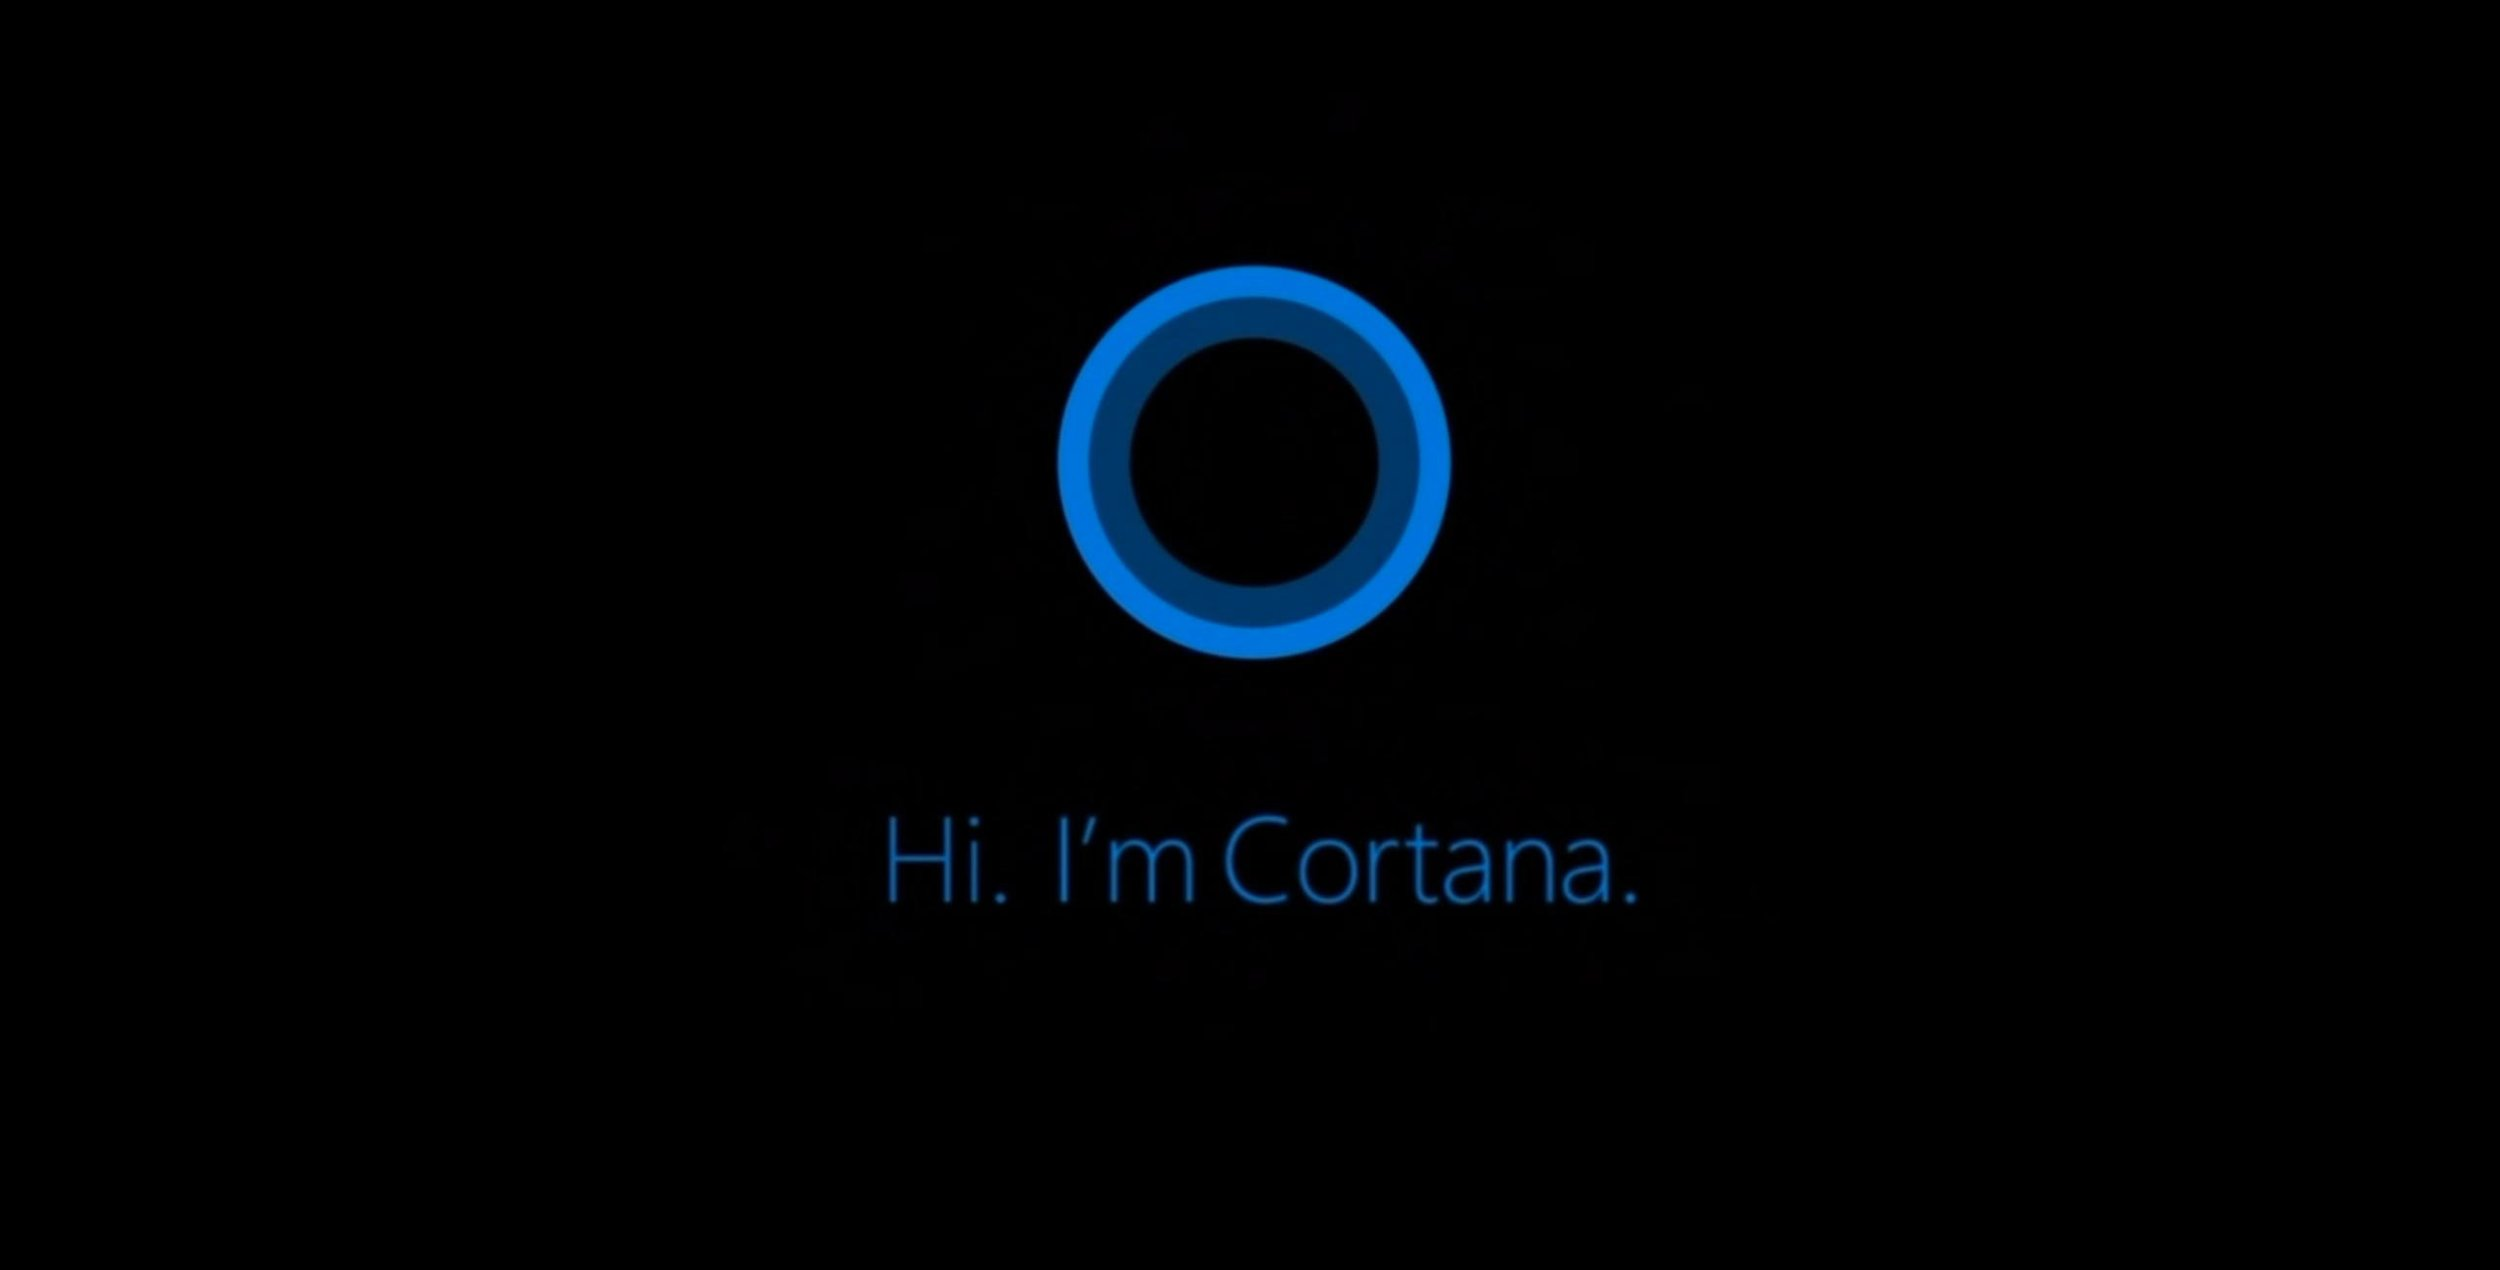 Microsoft-Cortana-Build-2014-000.jpg